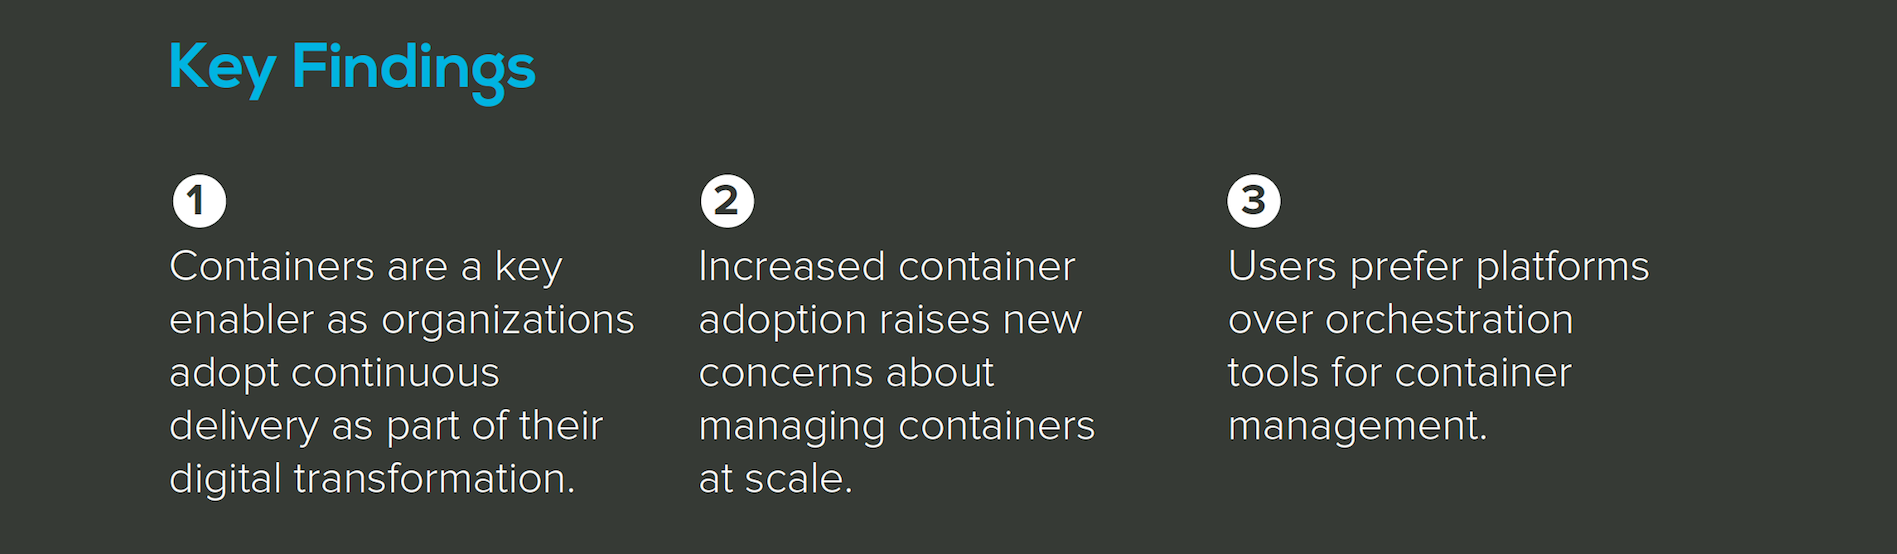 Cloud Foundry releases global study into Container adoption TechNative